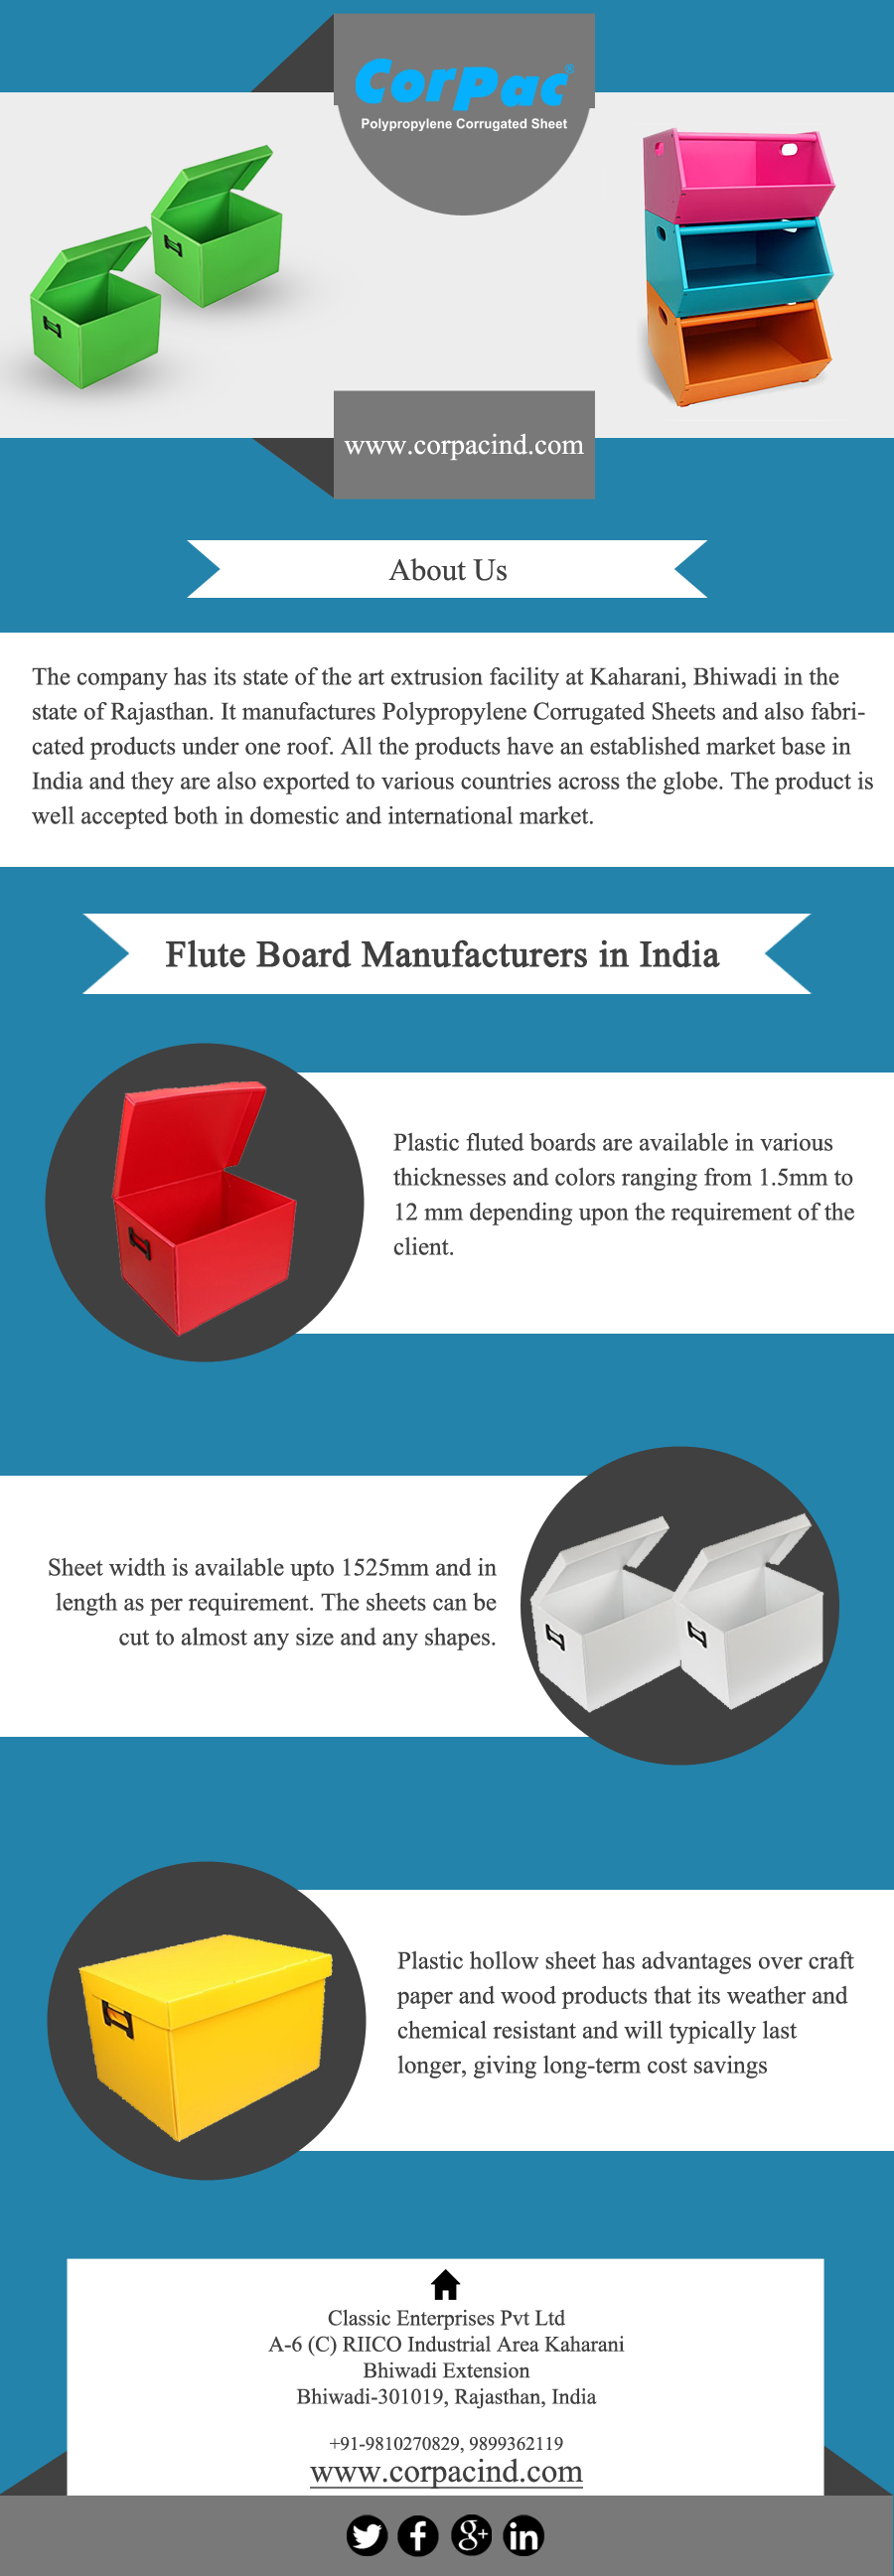 Welcome To One Of The Leading Flute Board Manufacturers In India Flute Boards Are Used For Packagi Corrugated Plastic Sheets Corrugated Plastic Plastic Sheets